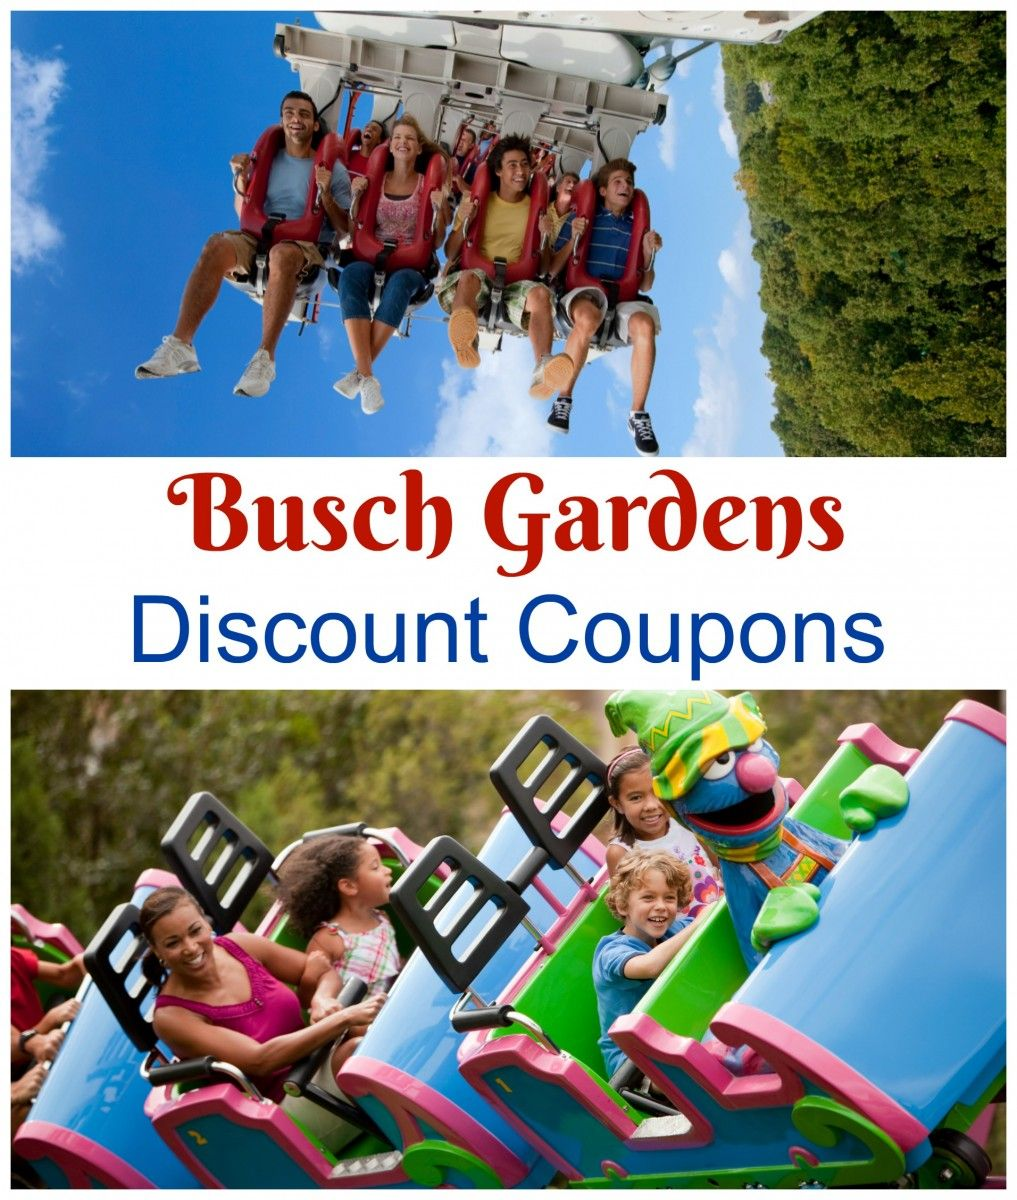 Find All Your Busch Gardens Discount Coupons 2019